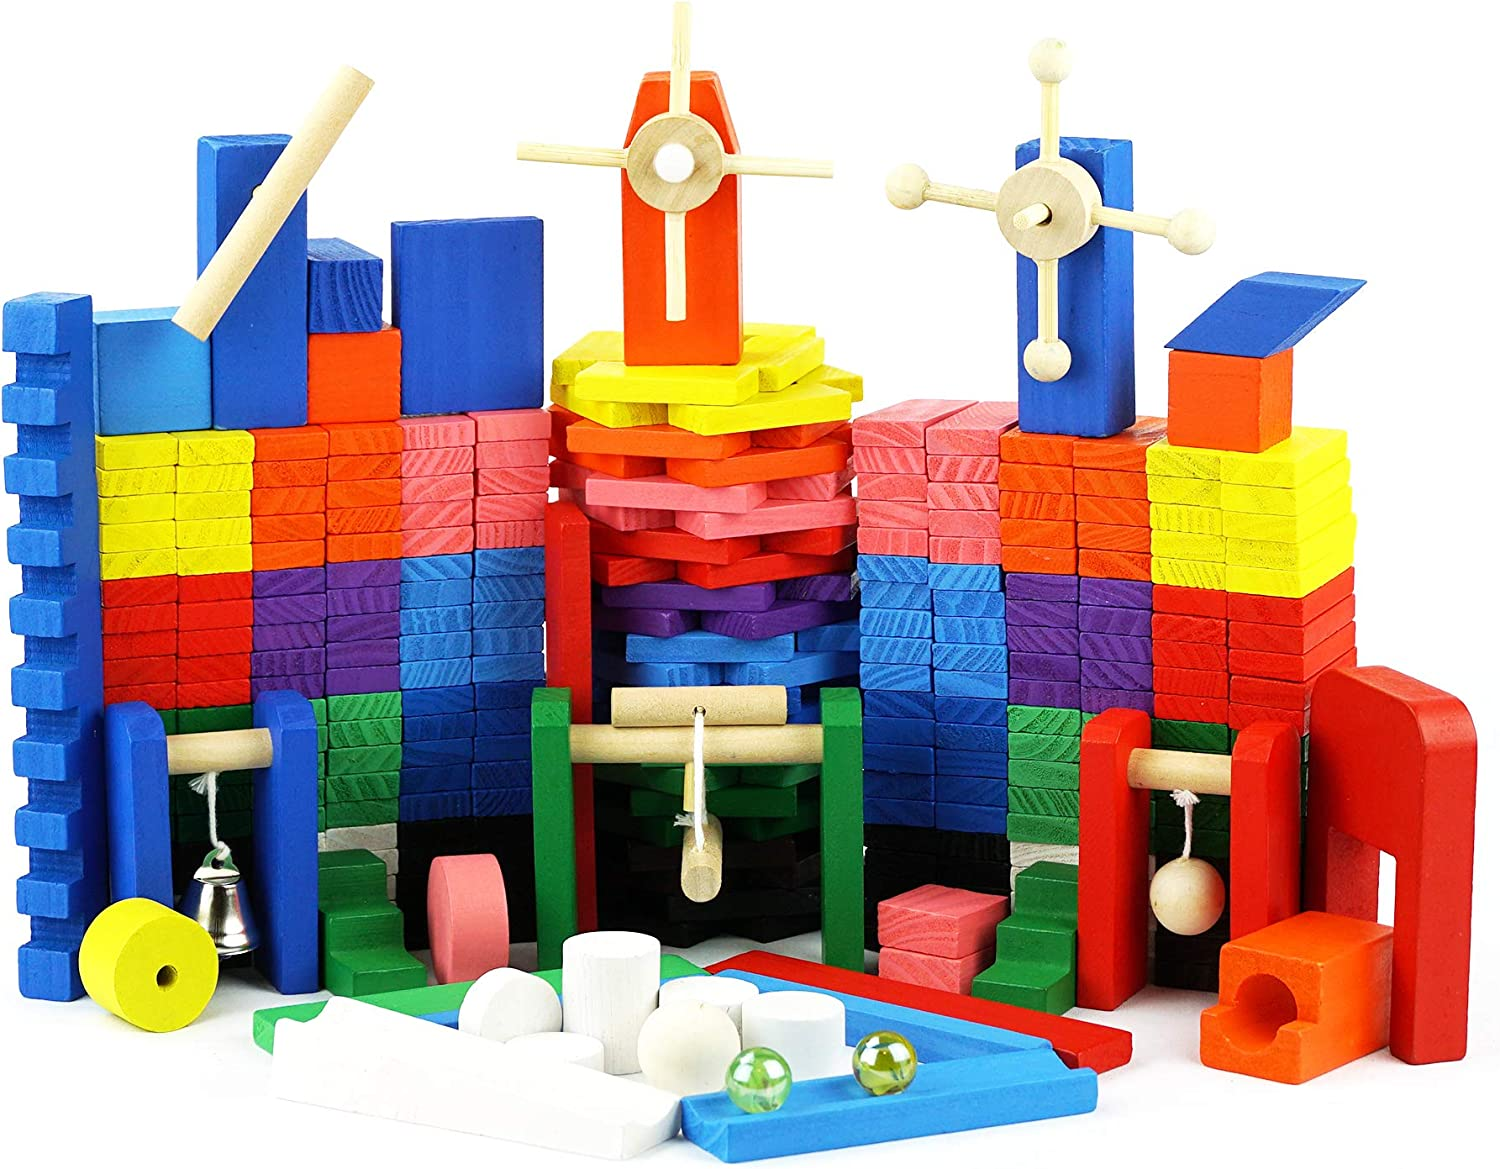 Genius Art 360 Pieces Kids Dominoes + 42 Wooden Blocks to Build Marble Run | Builiding and Stacking Toys